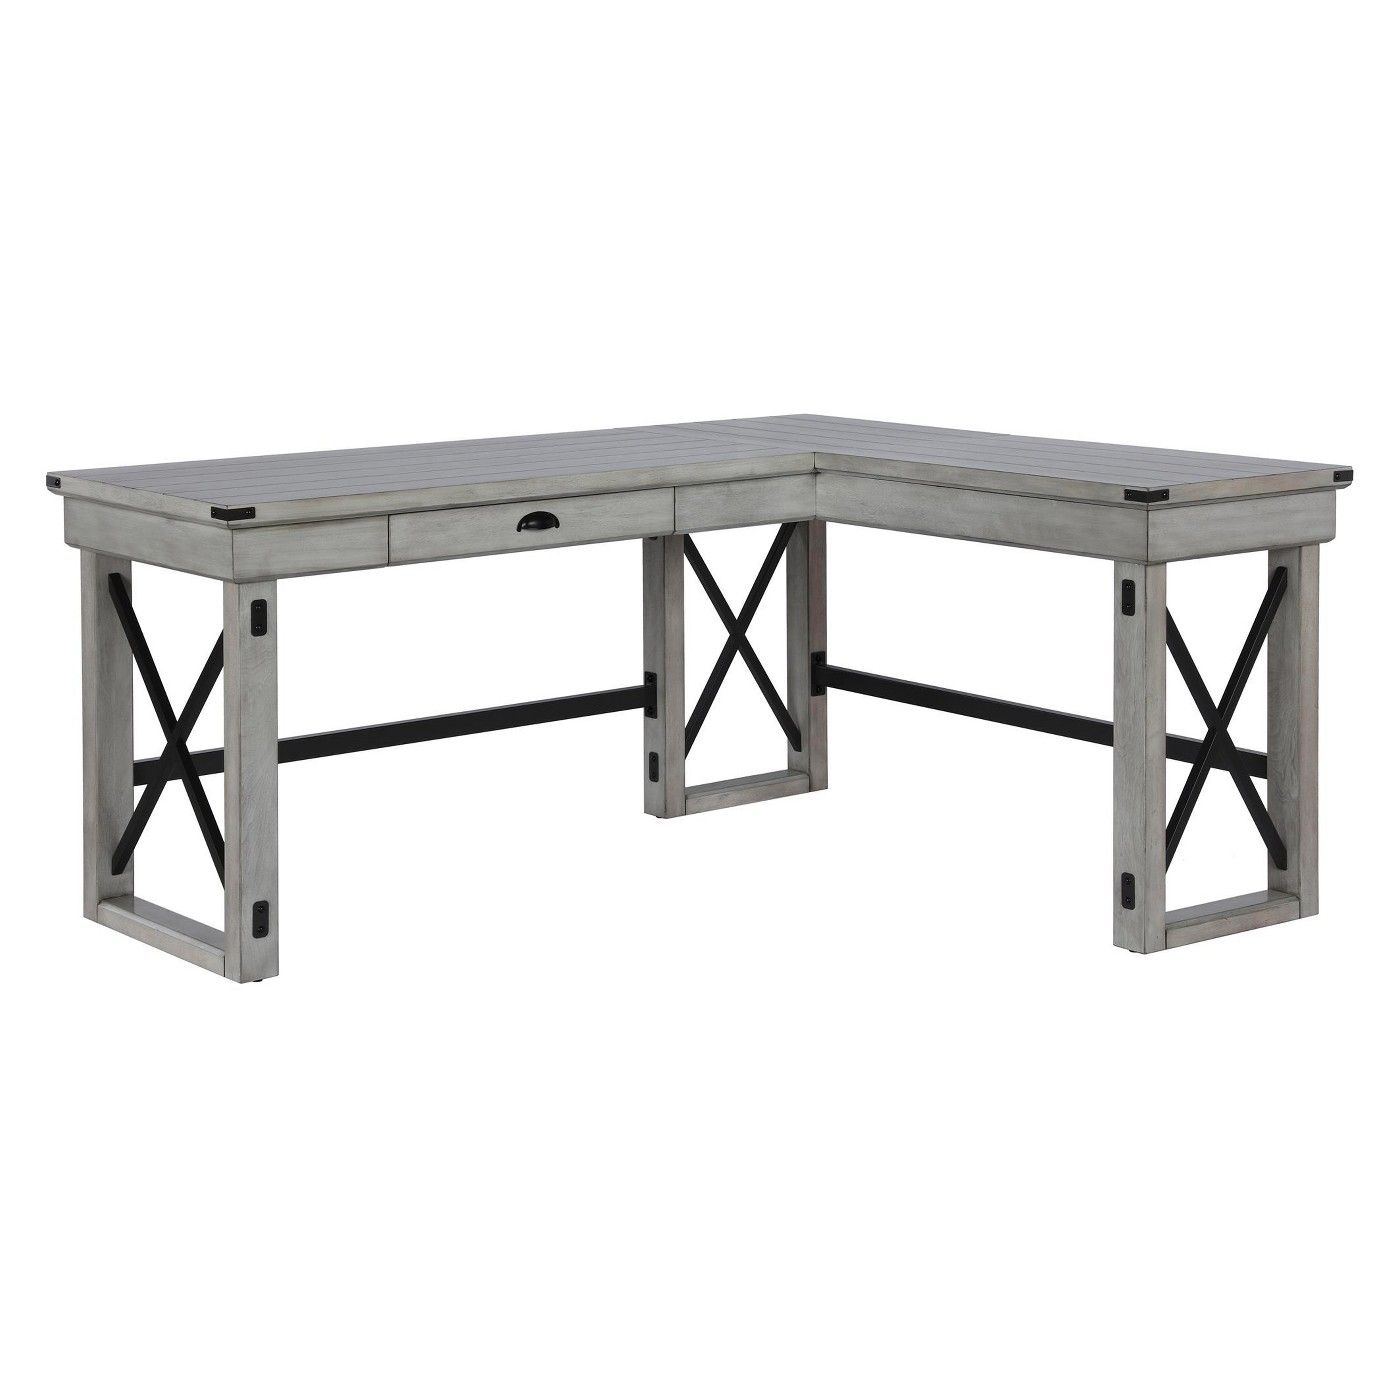 Hathaway L Shaped Desk With Lift Top Rustic White Room Joy L Shaped Desk Rustic White Grey Room